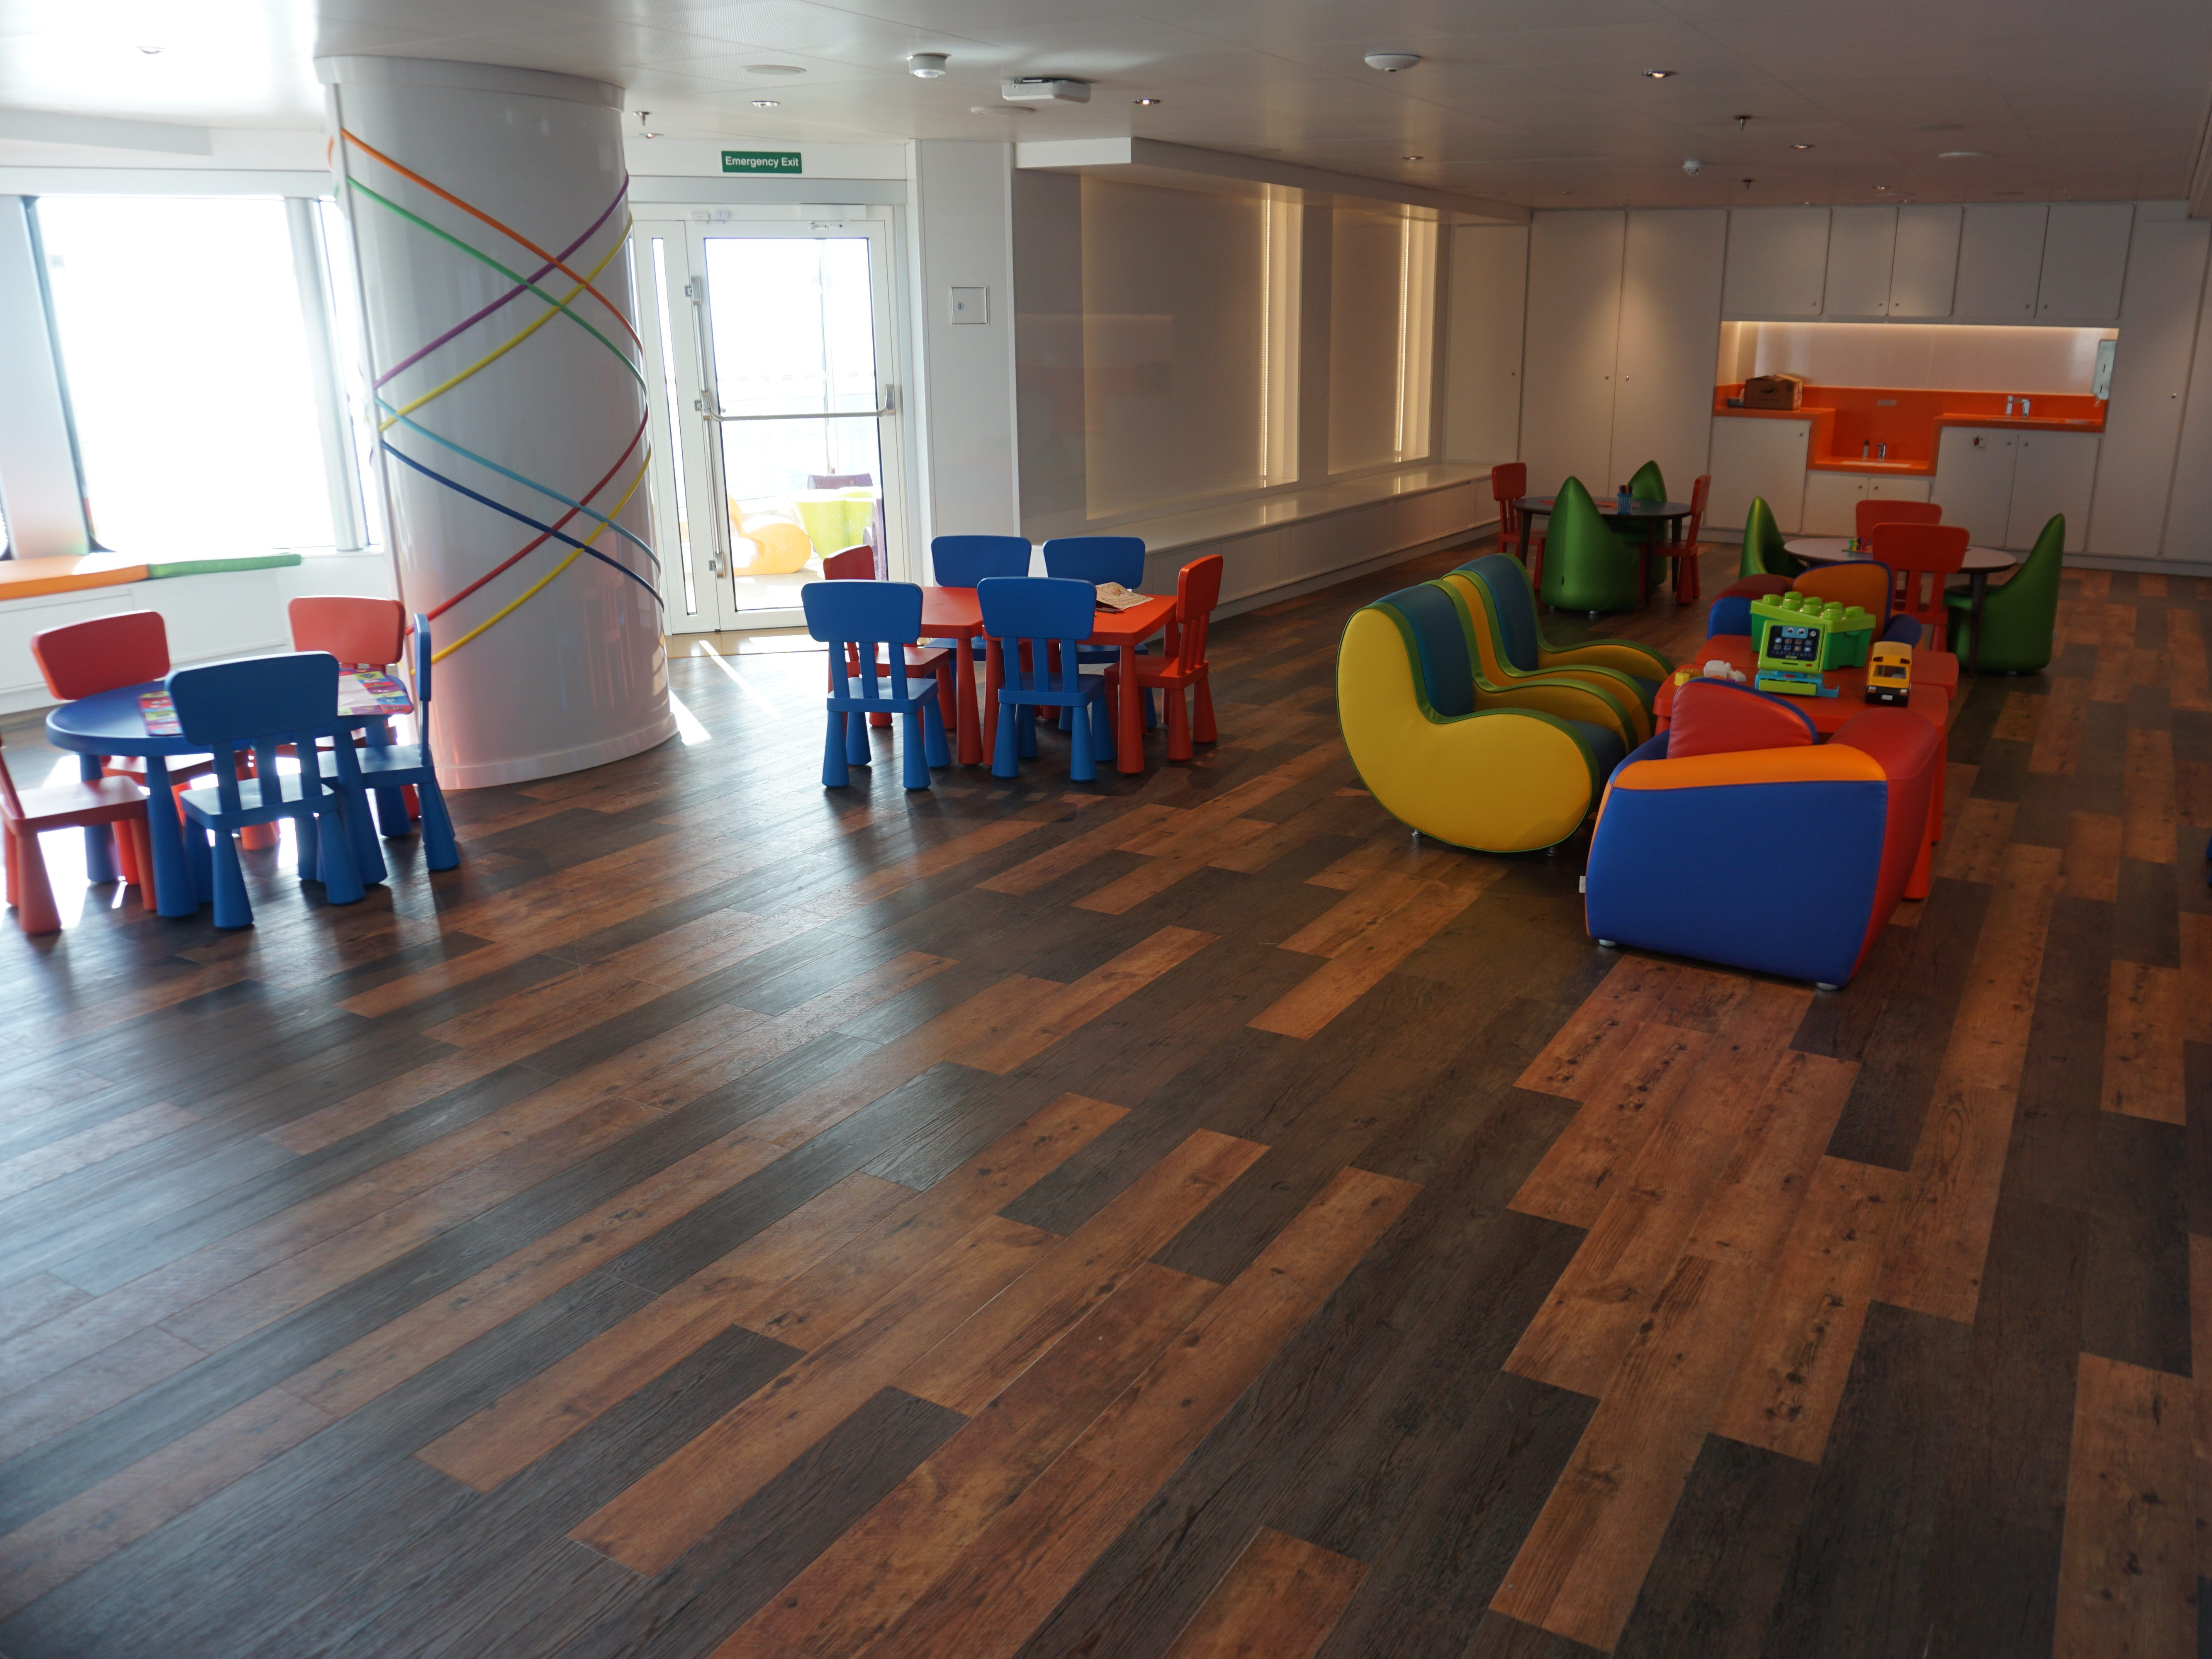 On the port side of Club HAL is a space for kids aged 3 to 6.